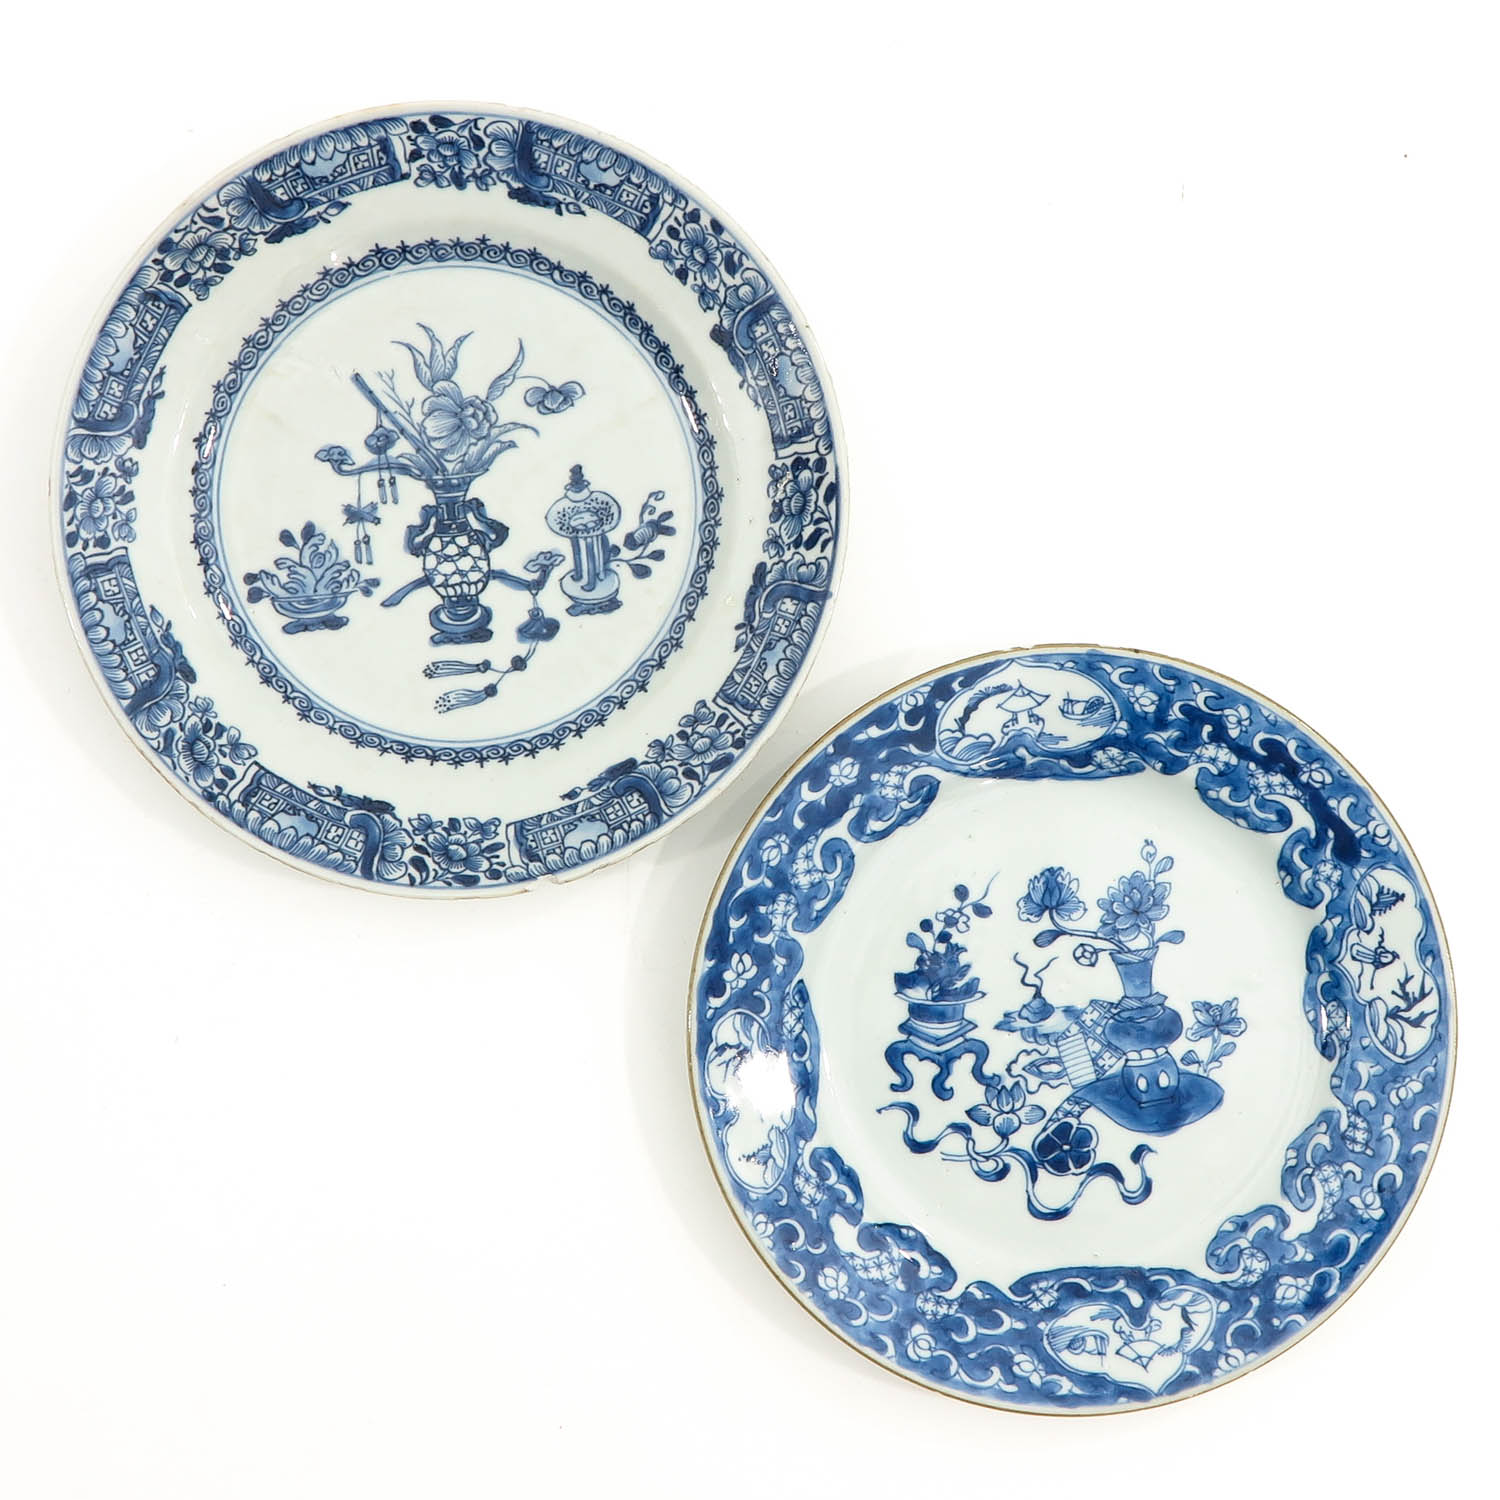 A Set of 6 Blue and White Plates - Image 7 of 10